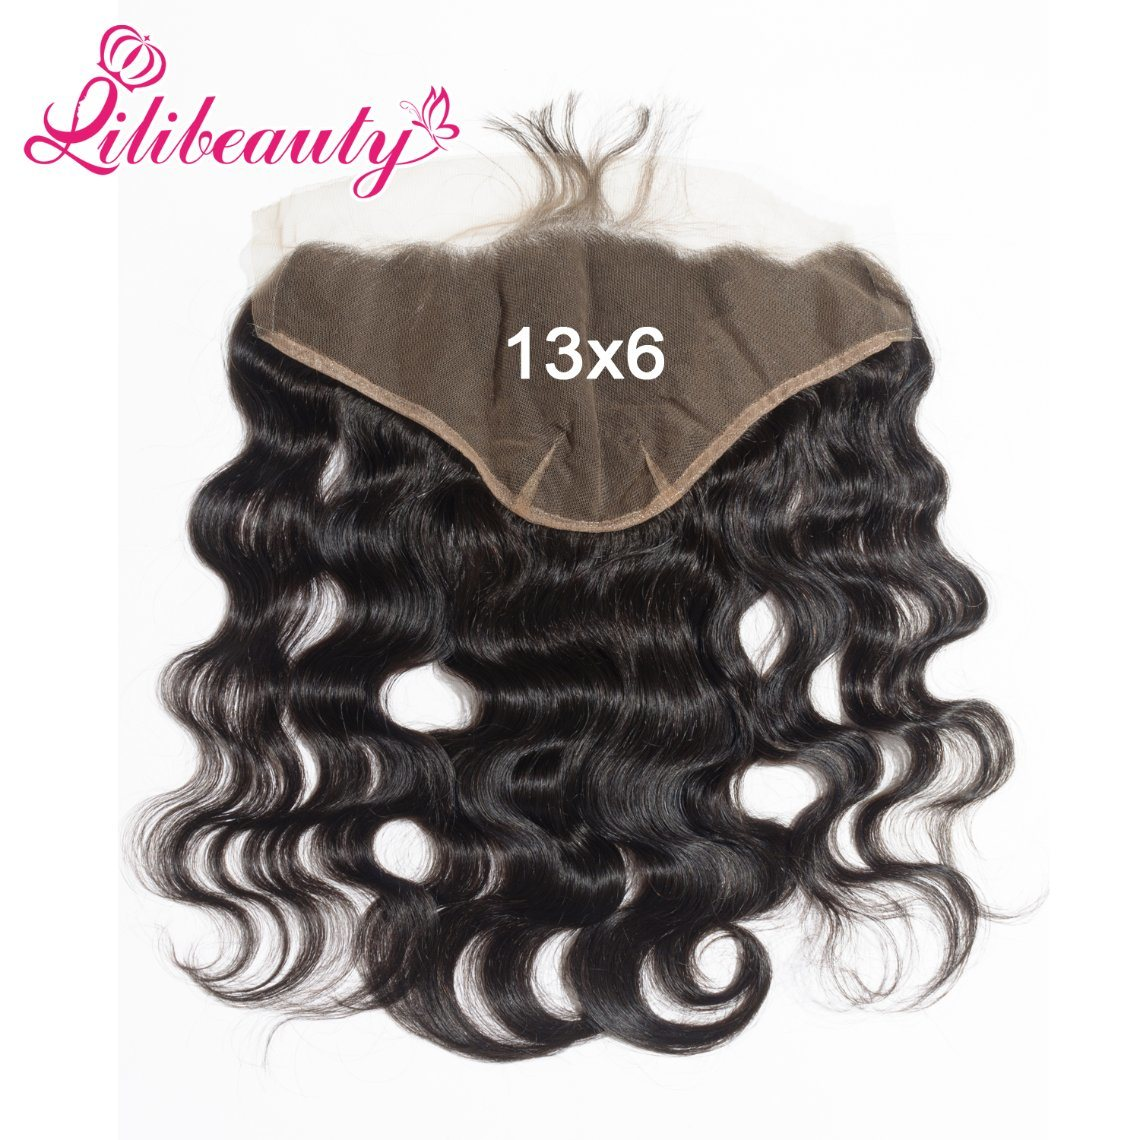 Fabulours Virgin Brazilian Hair Body Wave 13X6 Lace Frontal